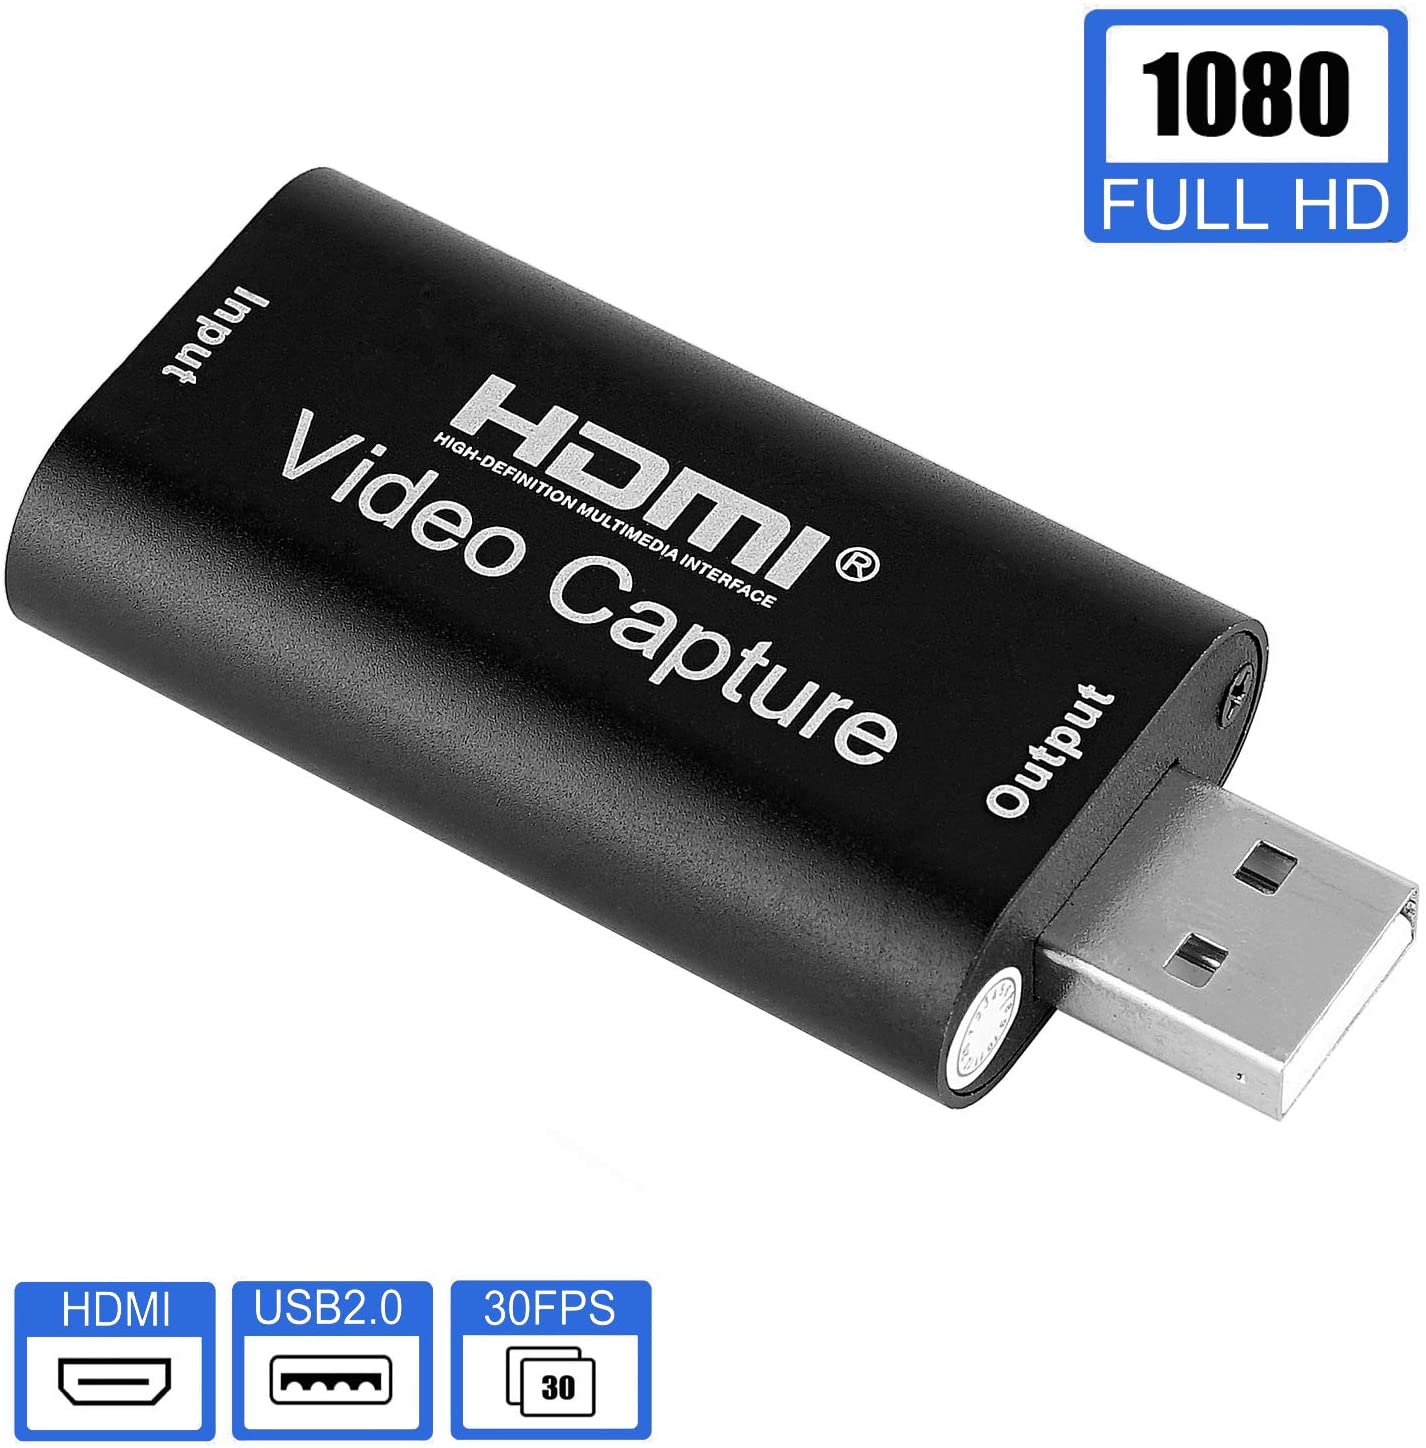 AreMe Audio Video Capture Cards, HDMI to USB2.0 1080p Video Recorder Device Support Cameras Phones PS3 PS4 Xbox Switch Wii U Etc